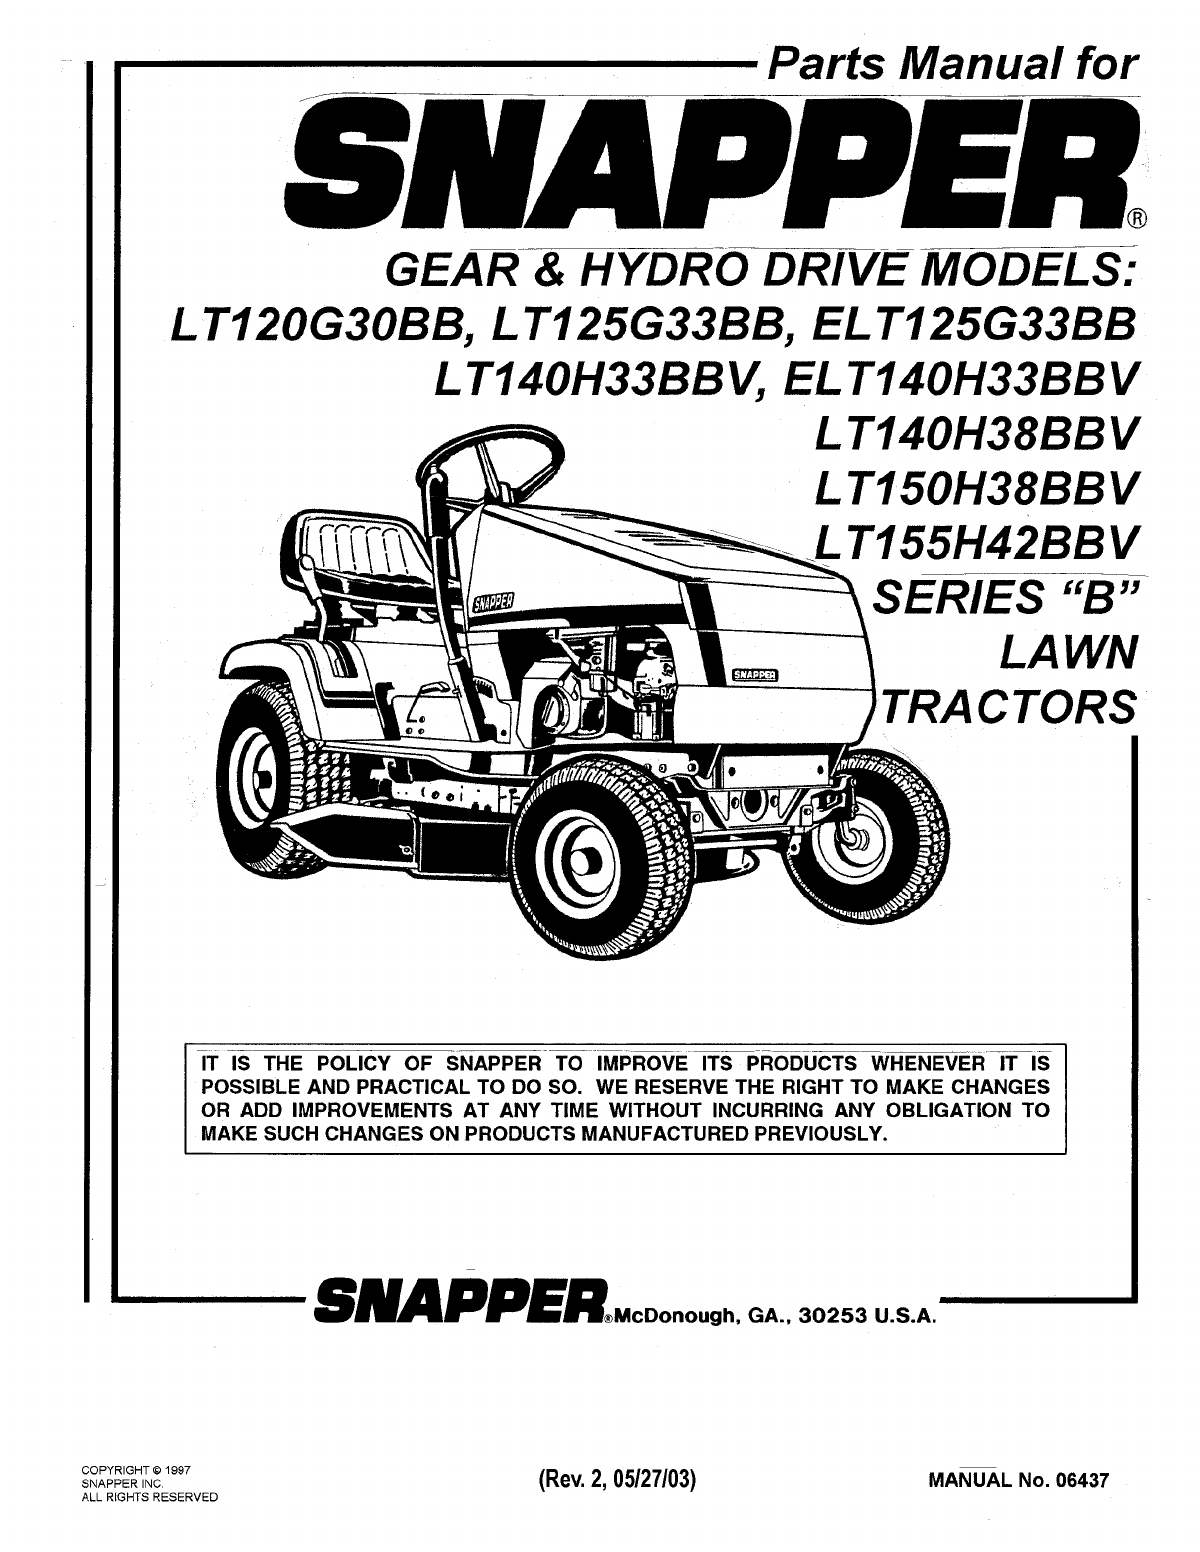 snapper lawn mower lt140h38bbv user guide manualsonline com rh kitchen manualsonline com snapper parts manuals 06064 snapper parts manual 7006128